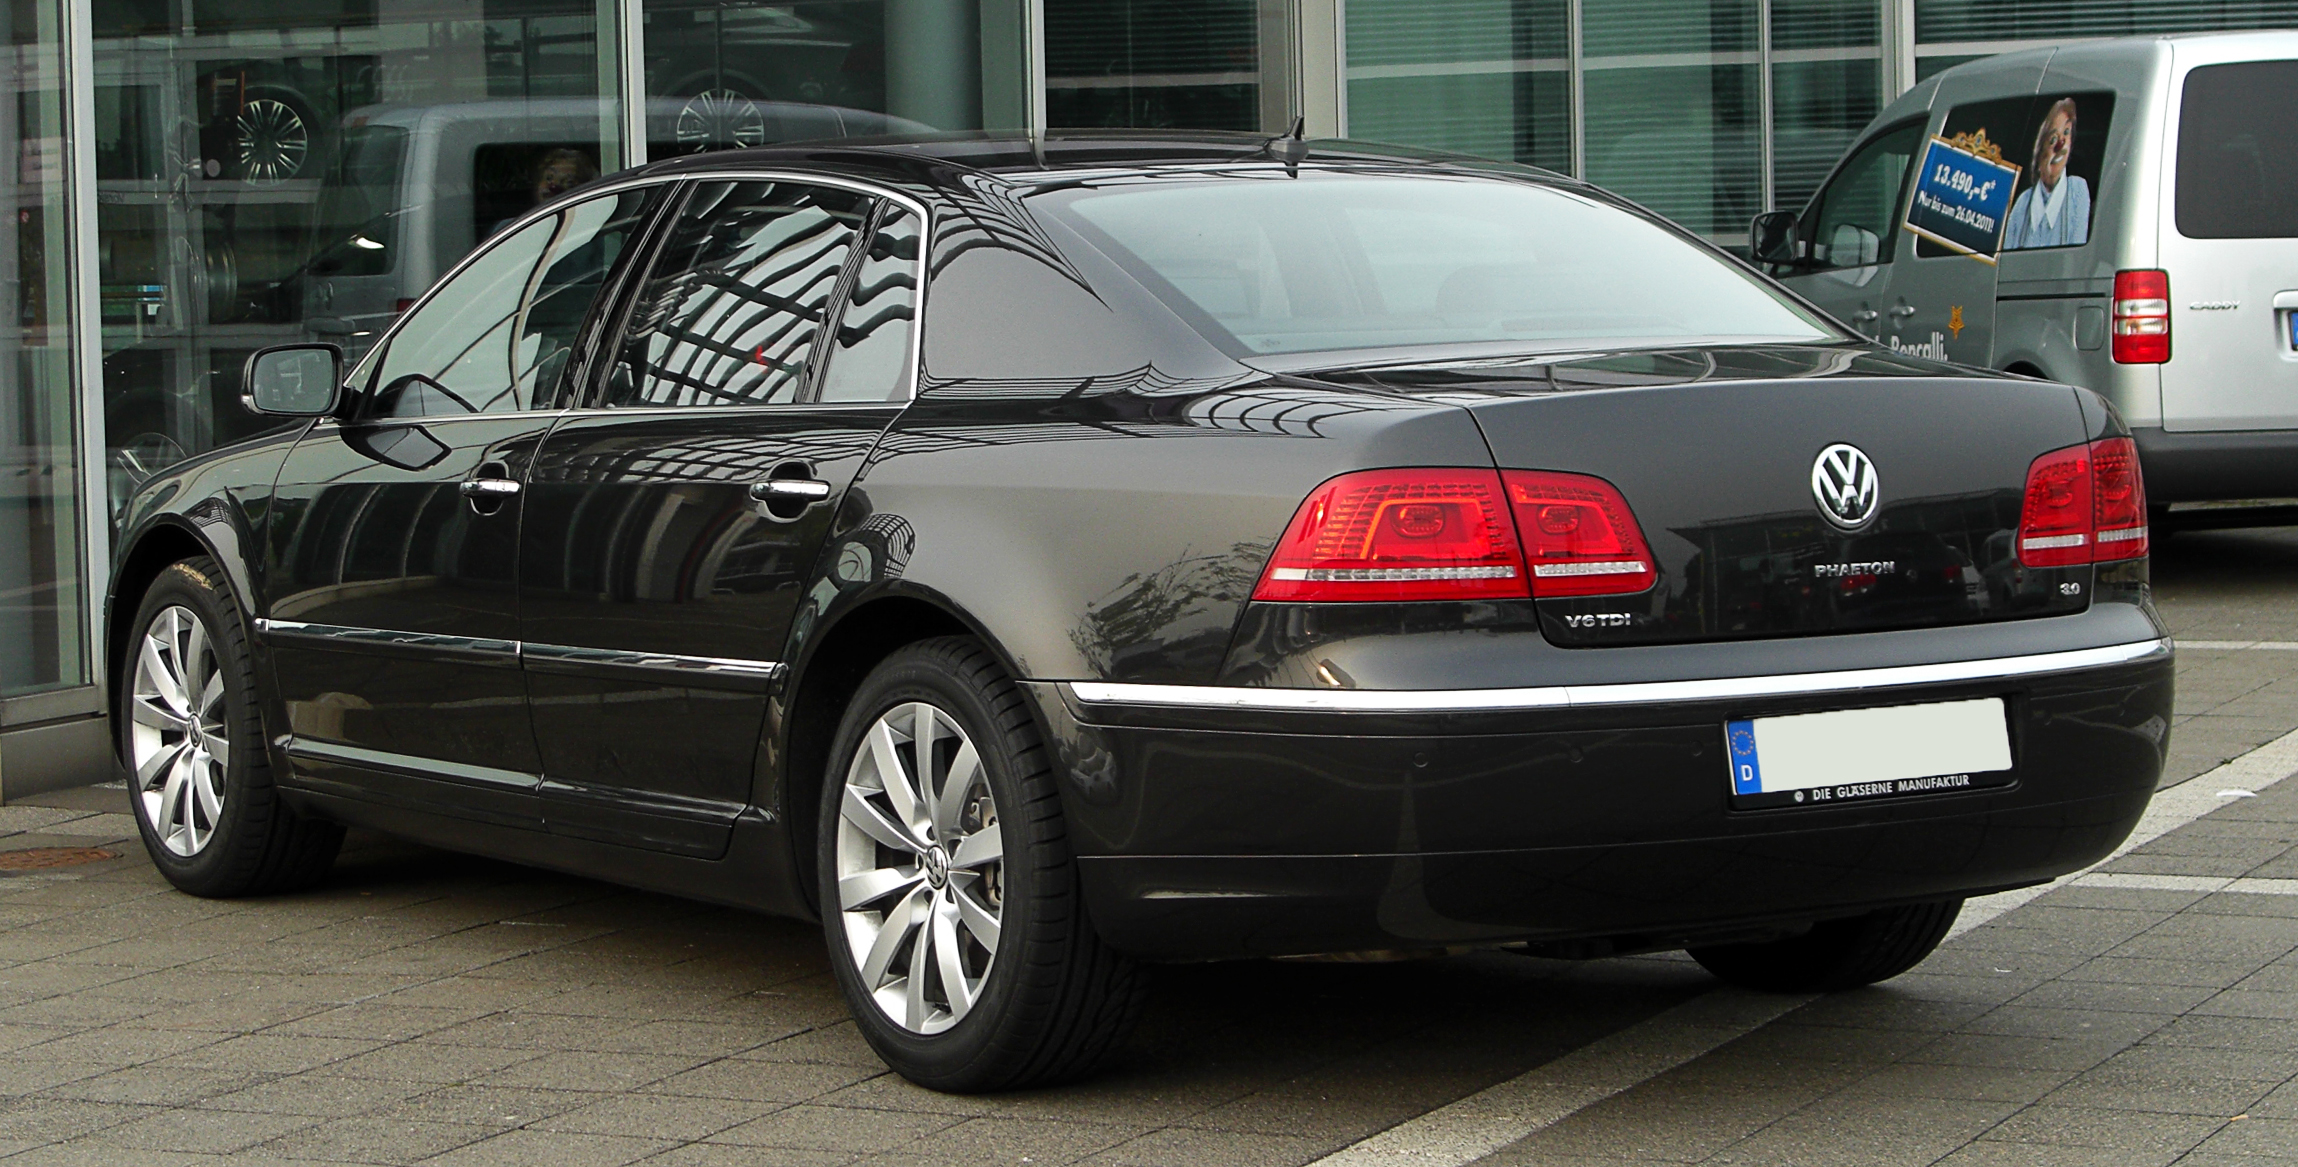 Volkswagen Phaeton 3.0 2011 photo - 4